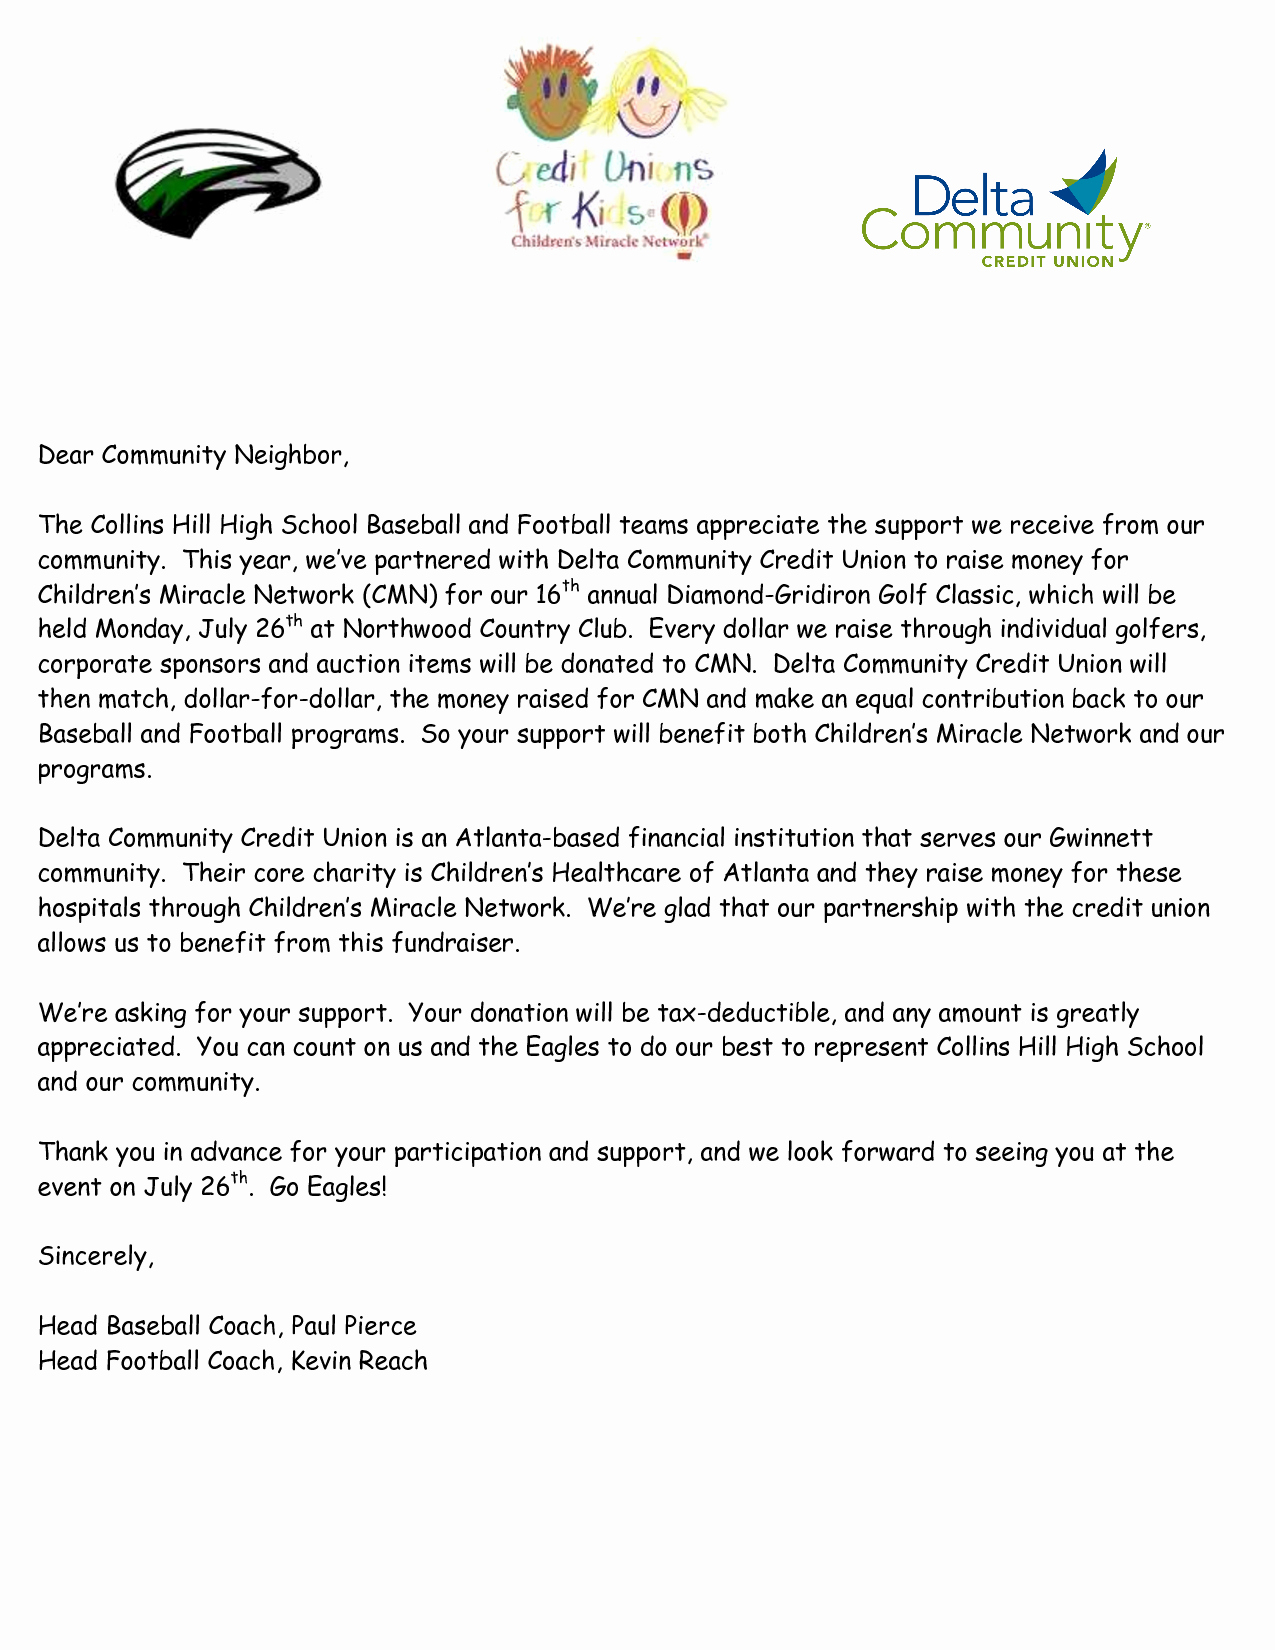 Golf tournament Sponsorship Letter Template - Fundraising Sponsorship form Template Awesome Best S Sponsorship